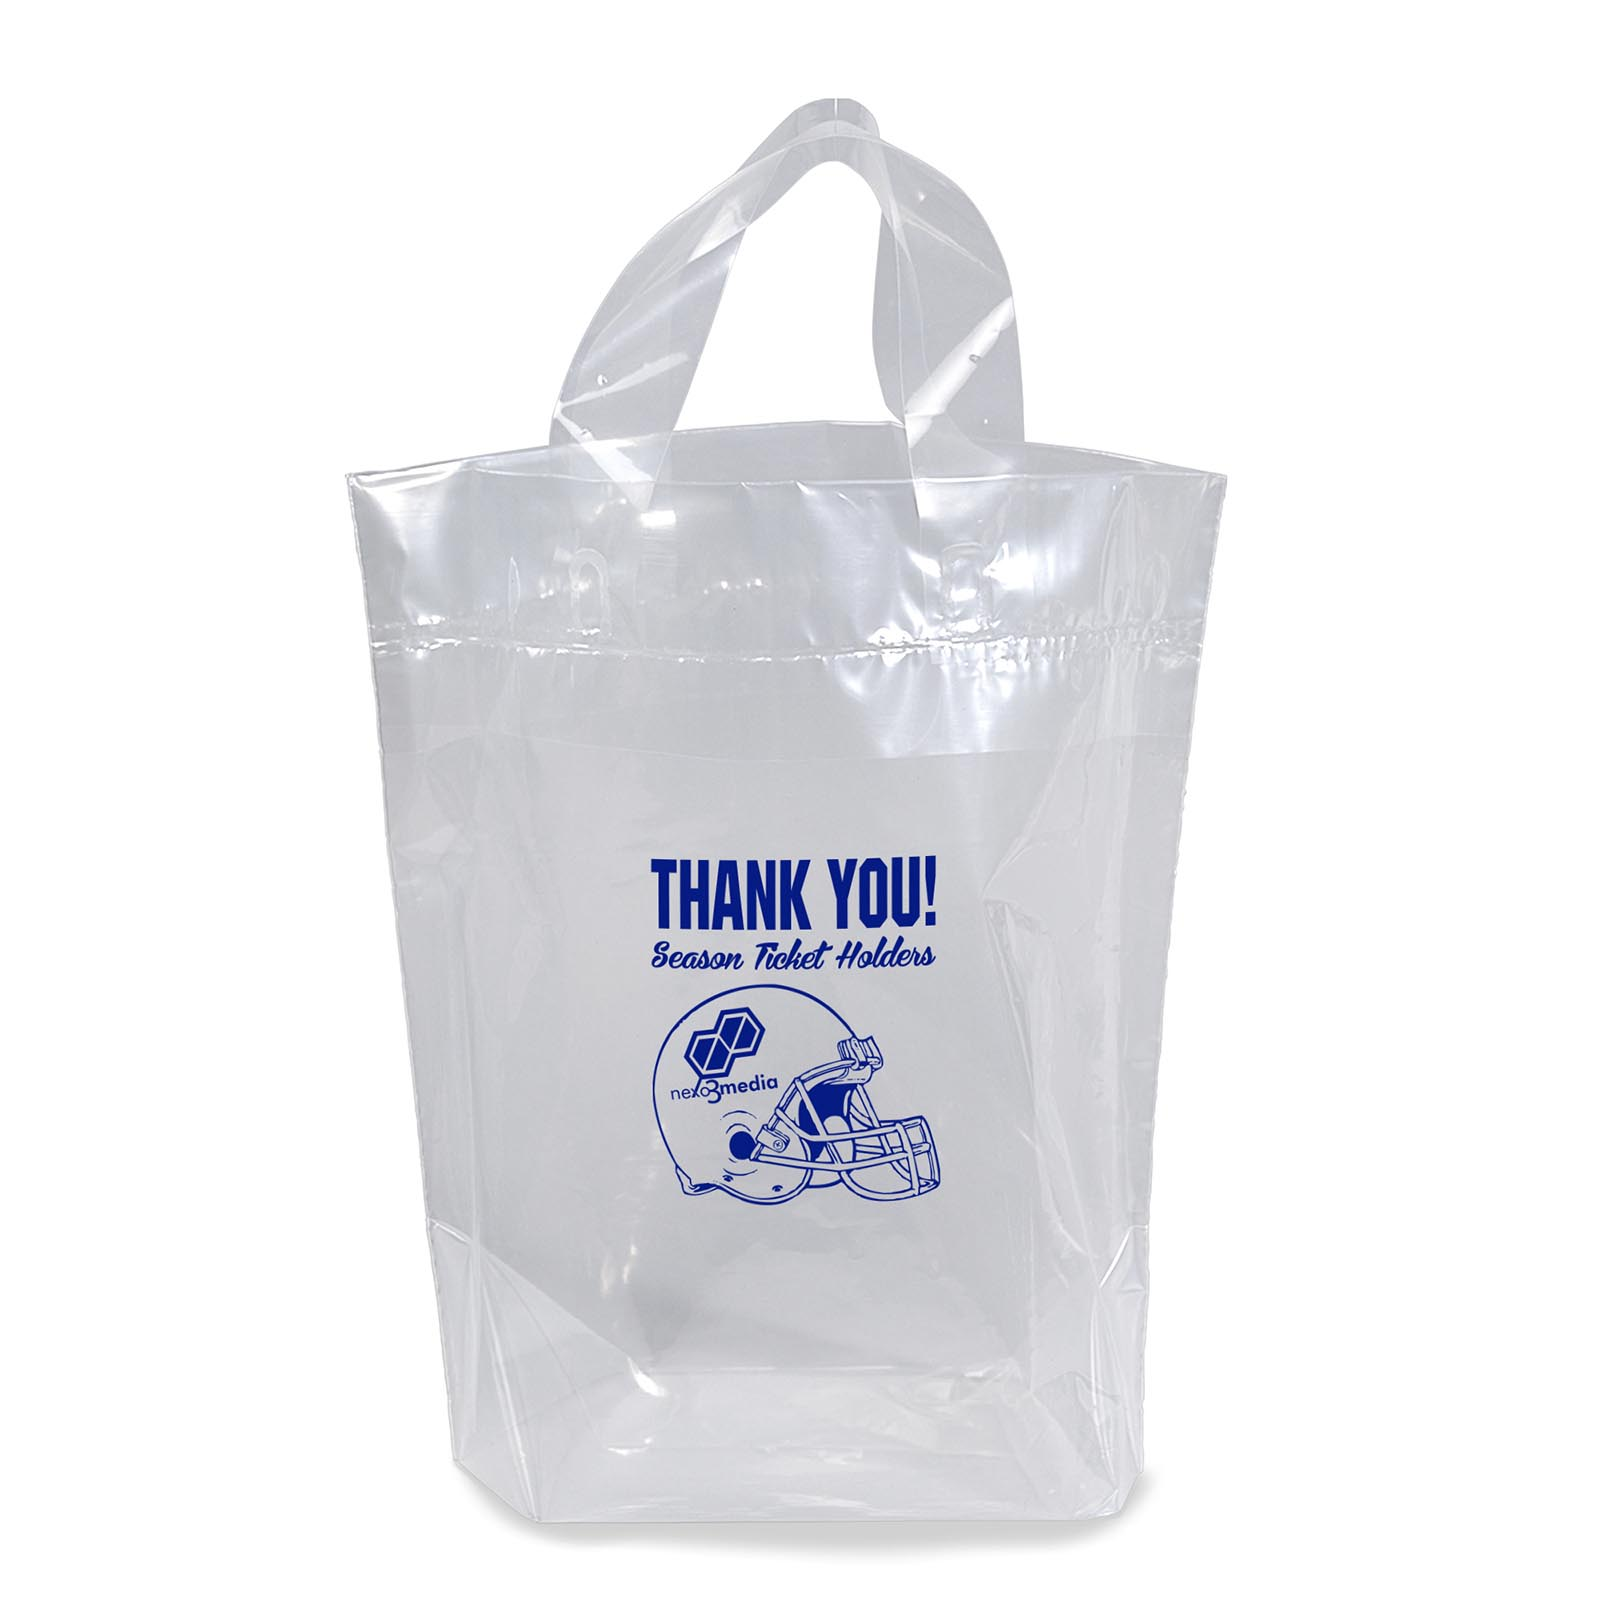 12 x 12 Soft Loop Handle Plastic Stadium Bags